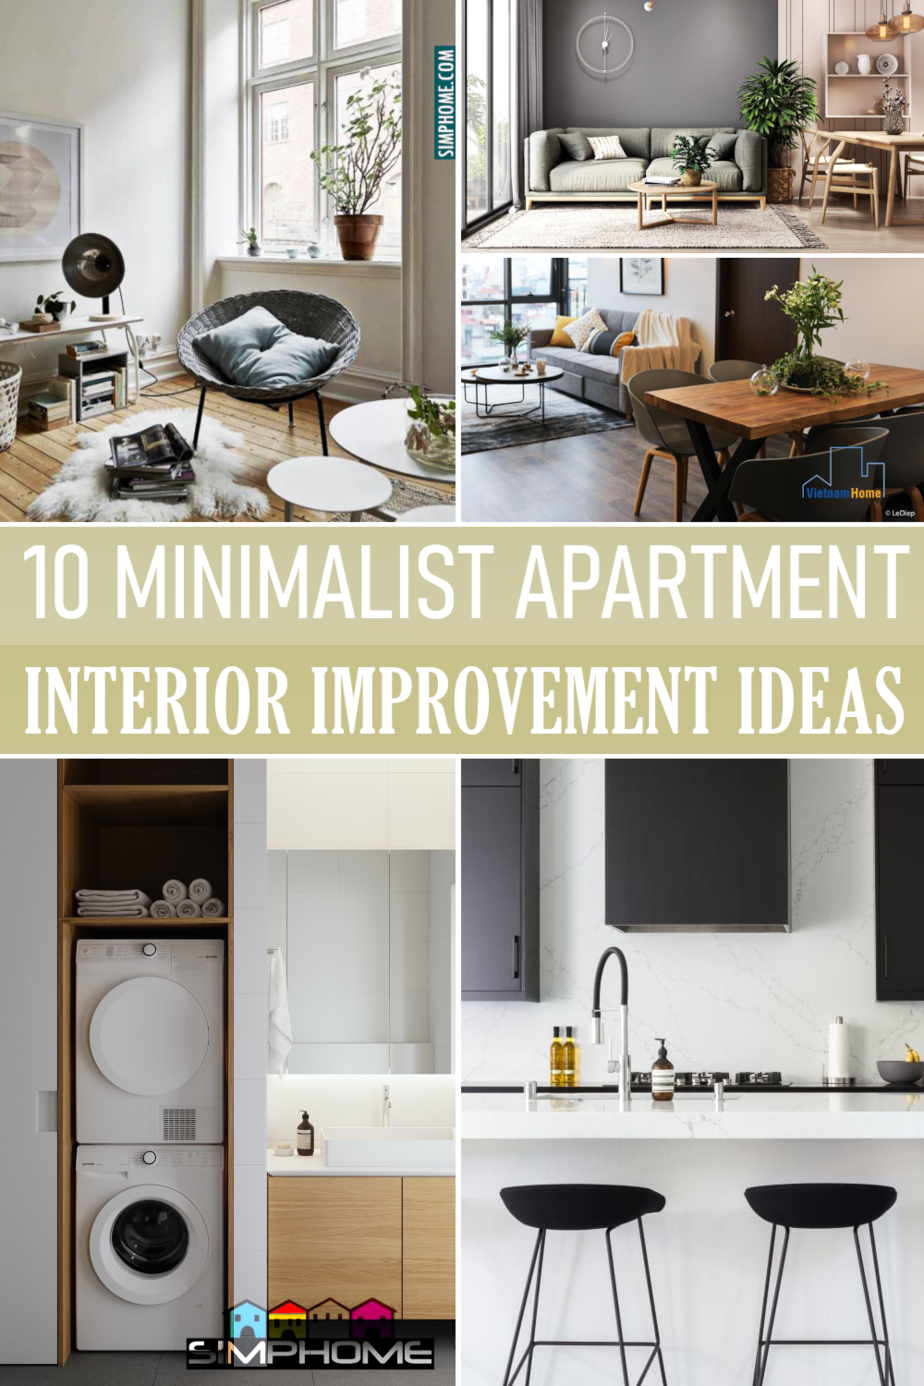 10 Minimalist Apartment Interior Improvement Ideas by Simphome.comFeatured